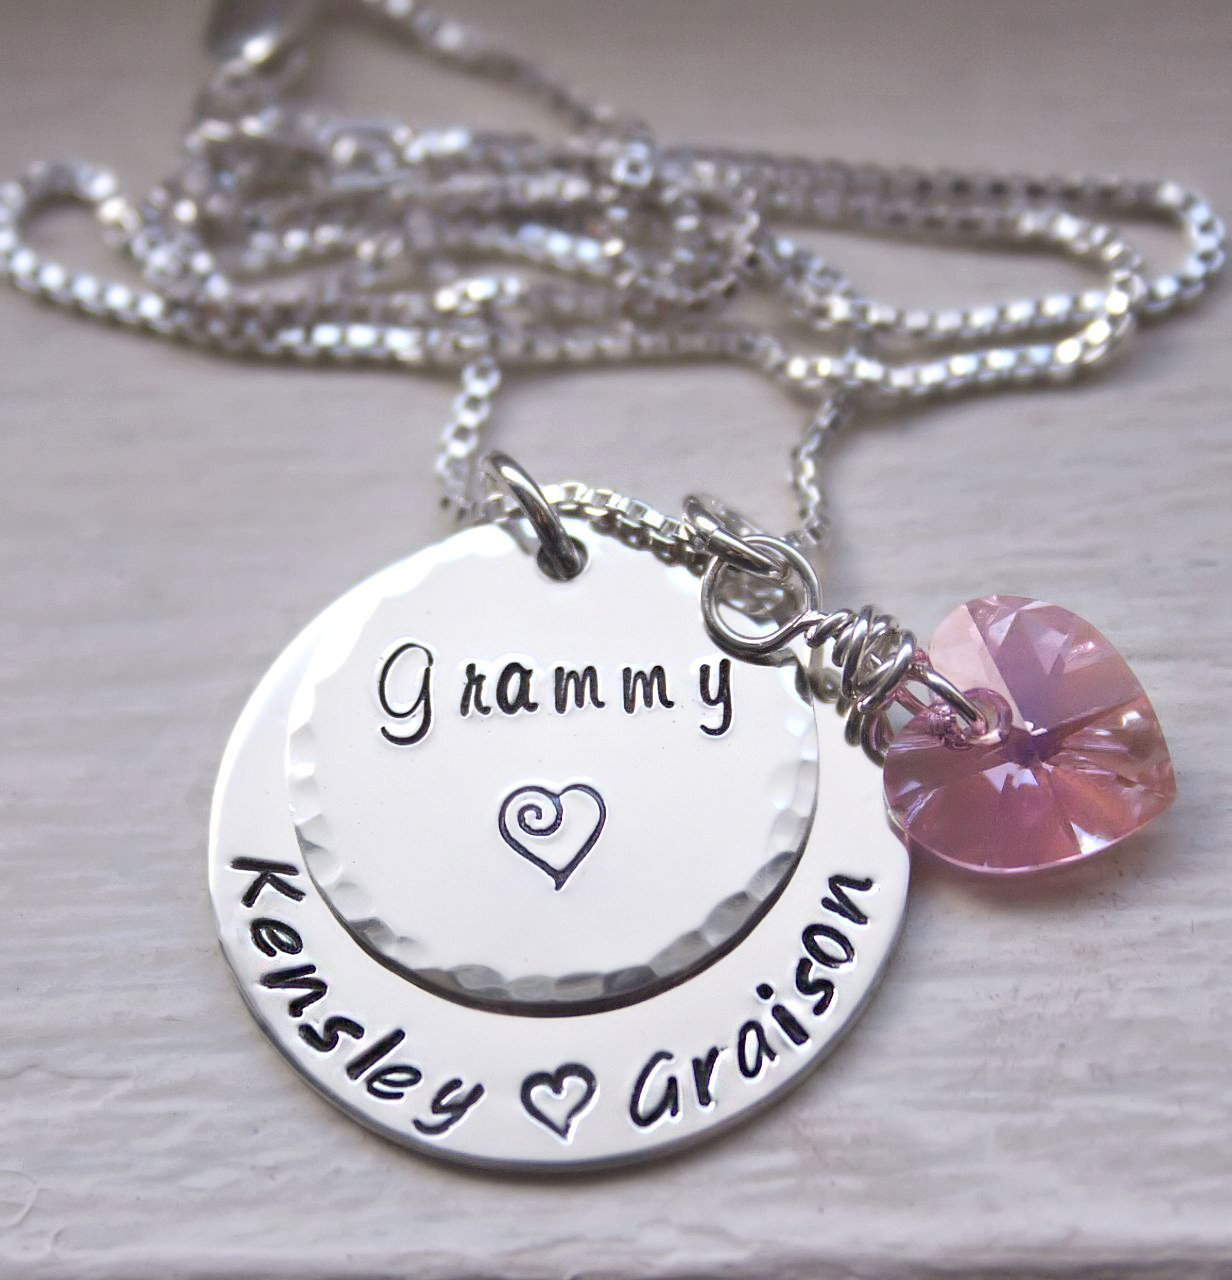 c22158eff Amazon.com: Custom Personalized Grandma Necklace, Mommy Jewelry, with Kids  Names, Hand Stamped Sterling Silver Necklace: Handmade